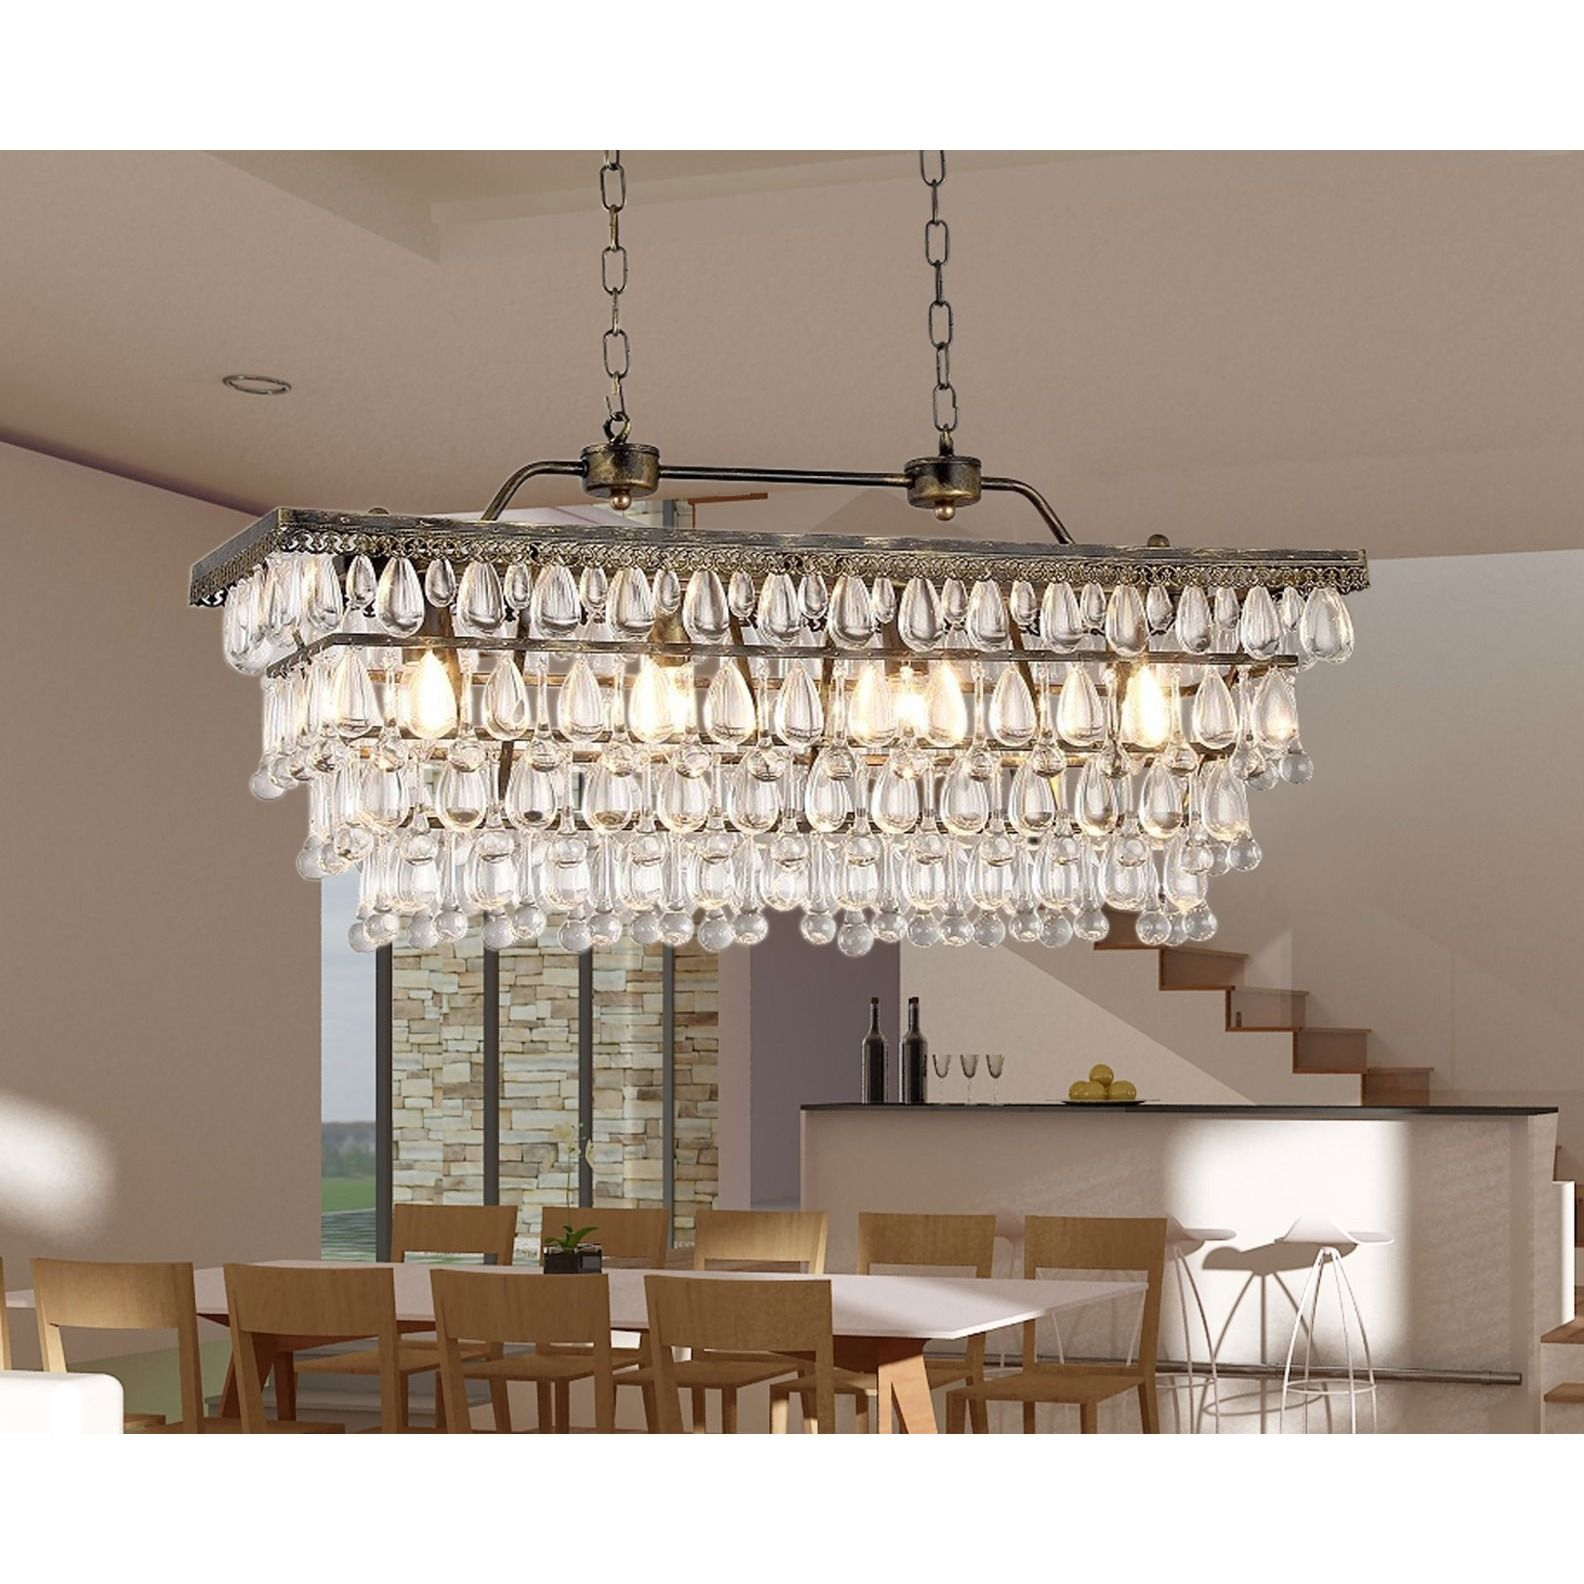 Warmth and style are the hallmarks of this chandelier that will ...